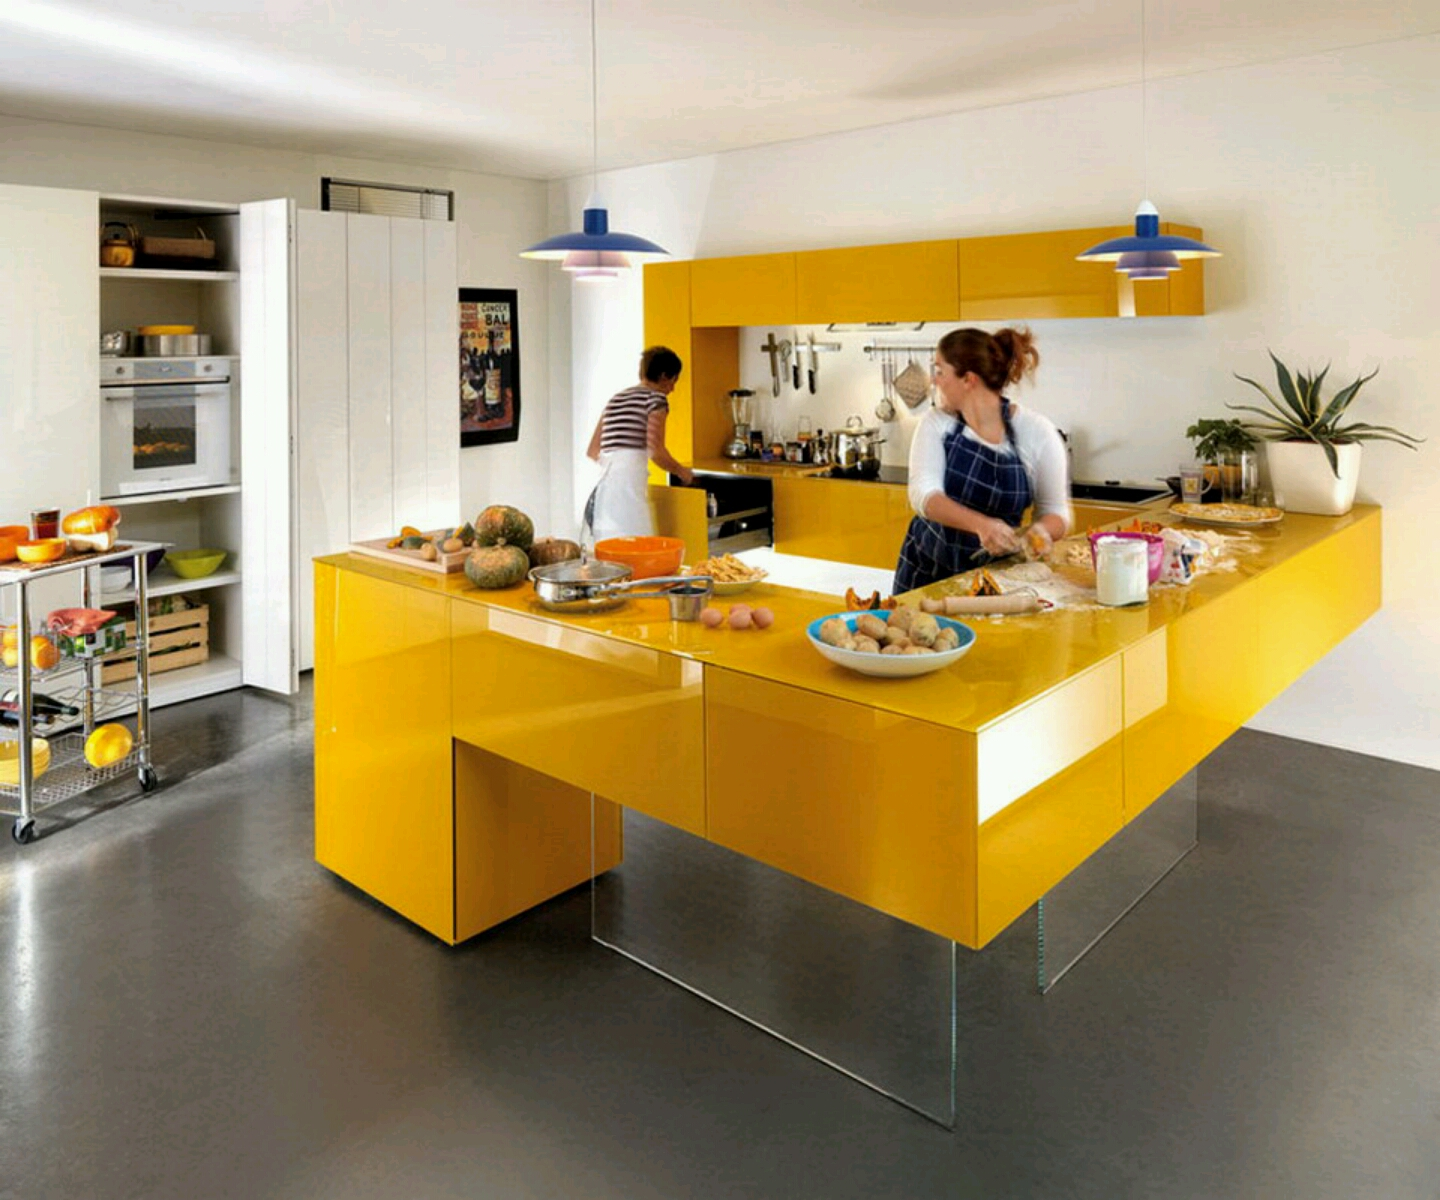 Modern kitchen cabinets designs ideas furniture gallery for Latest kitchen cabinet design